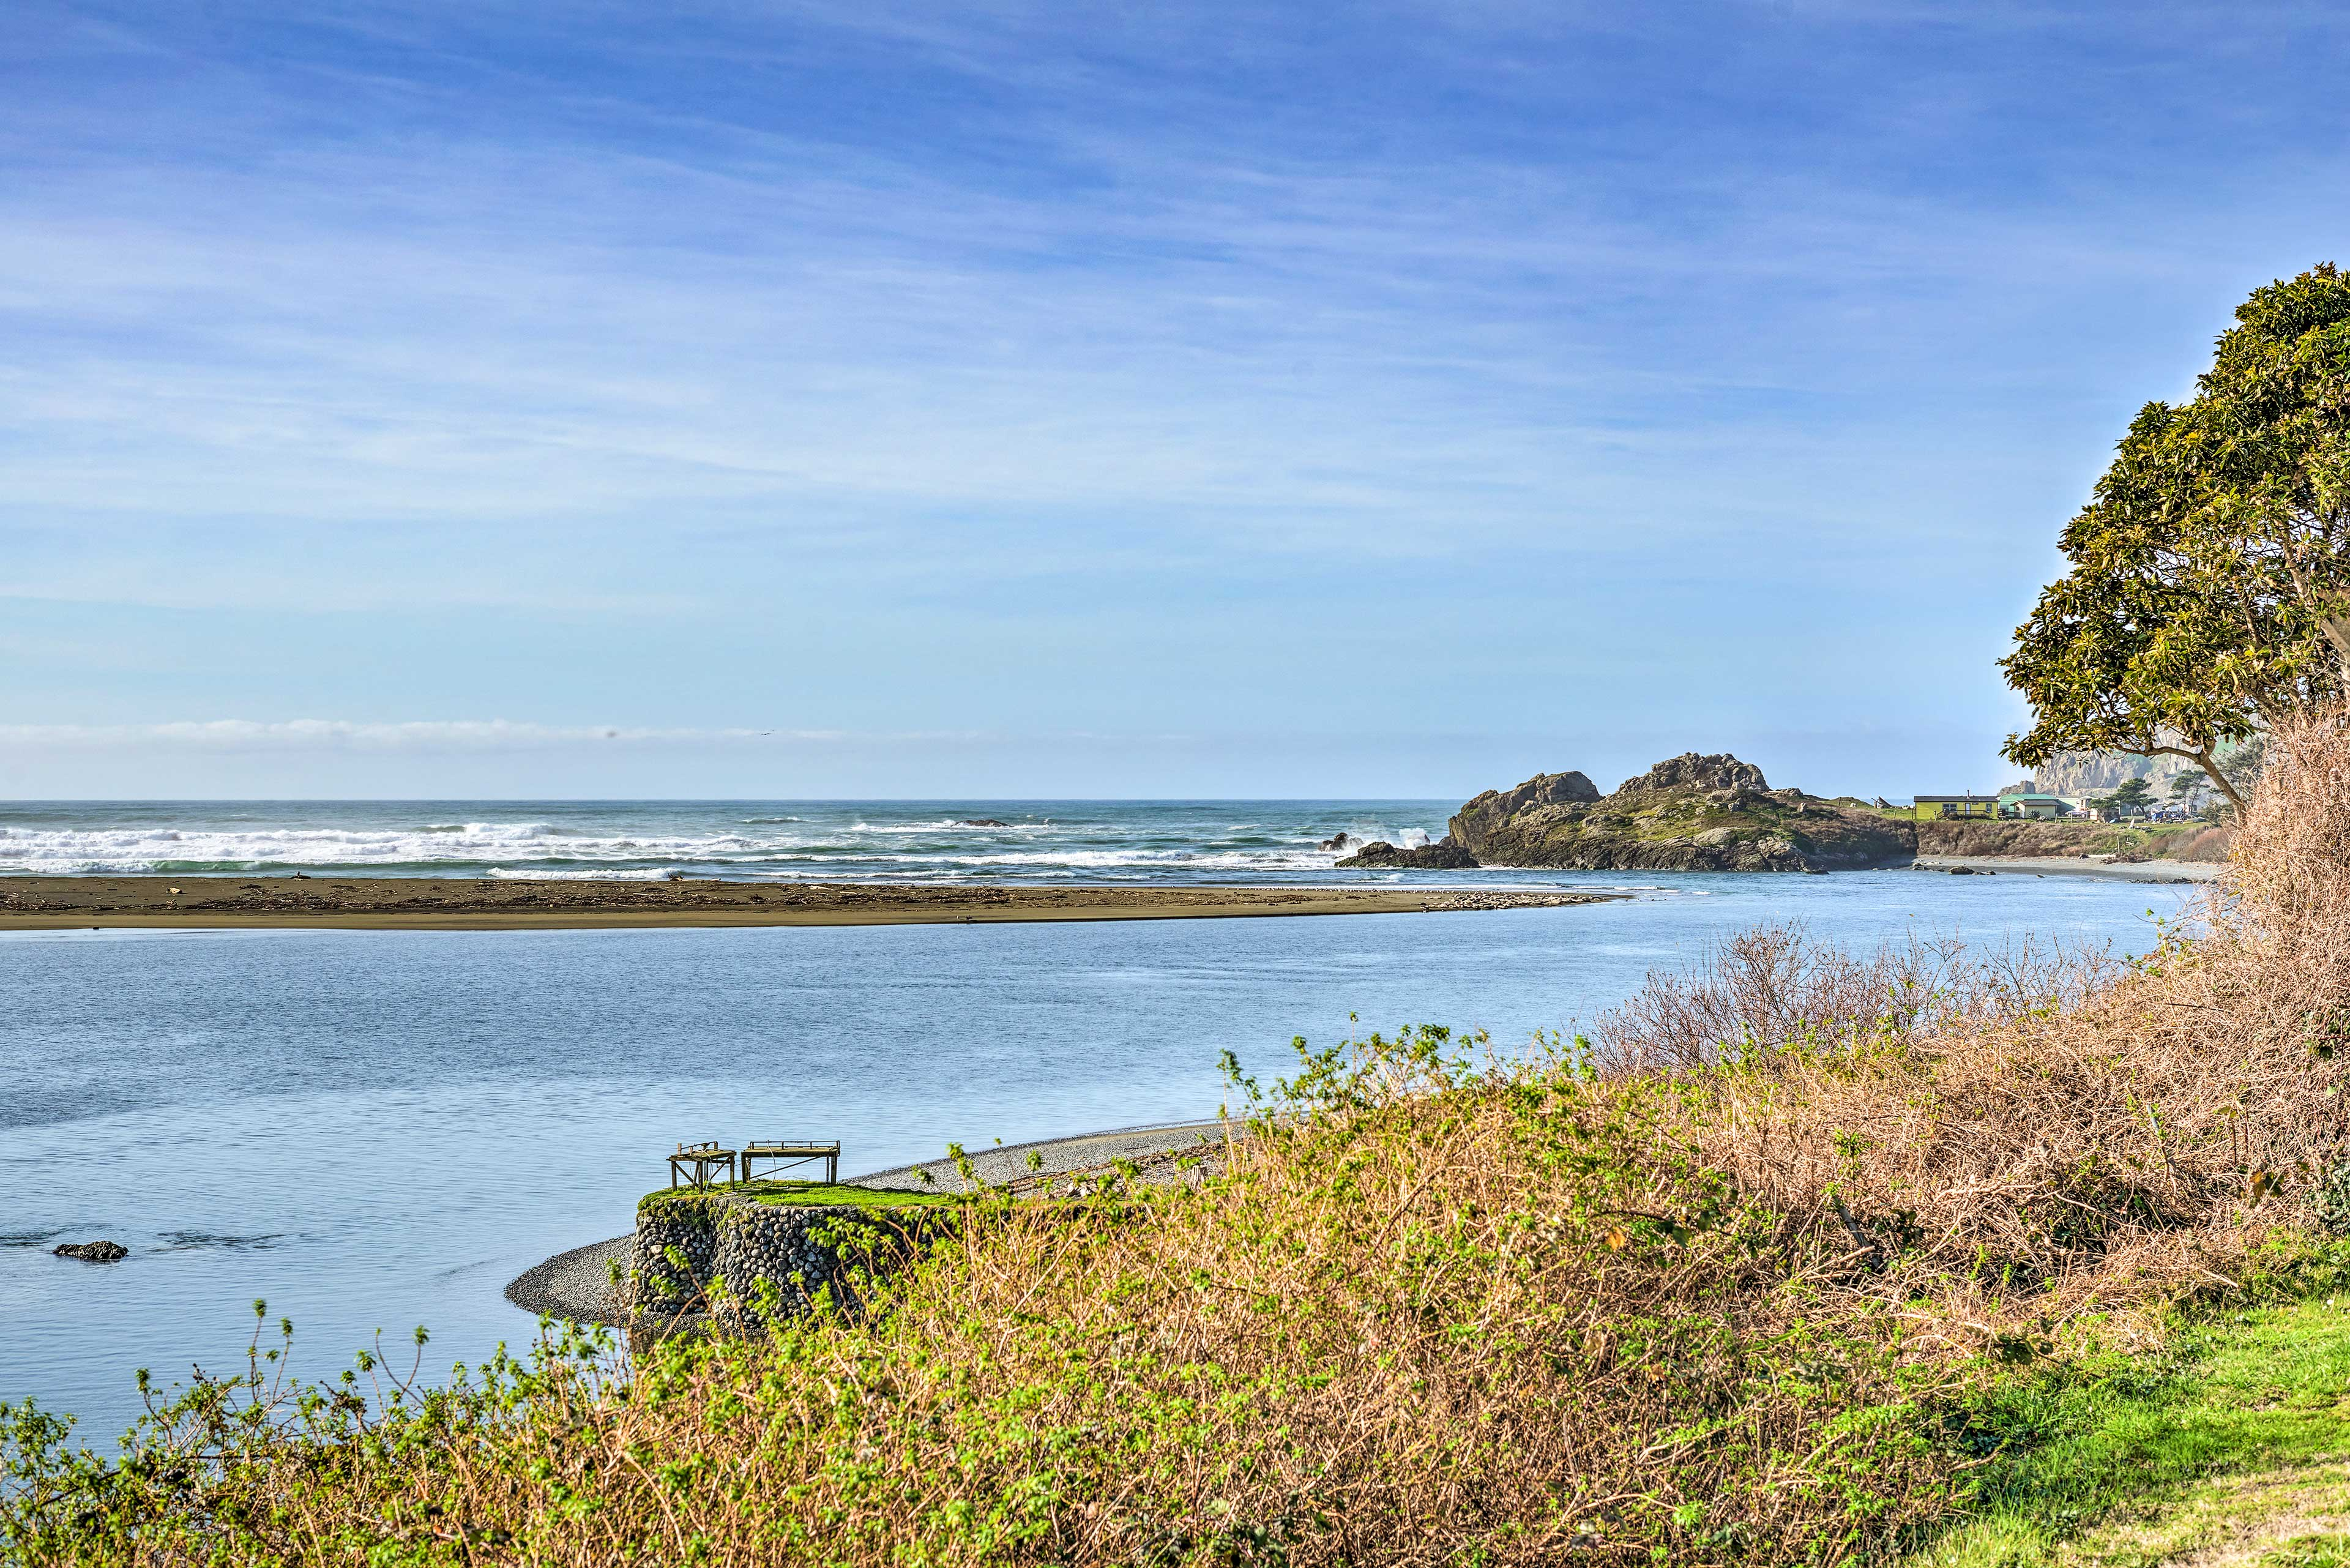 The Pacific Ocean is mere steps from the home.